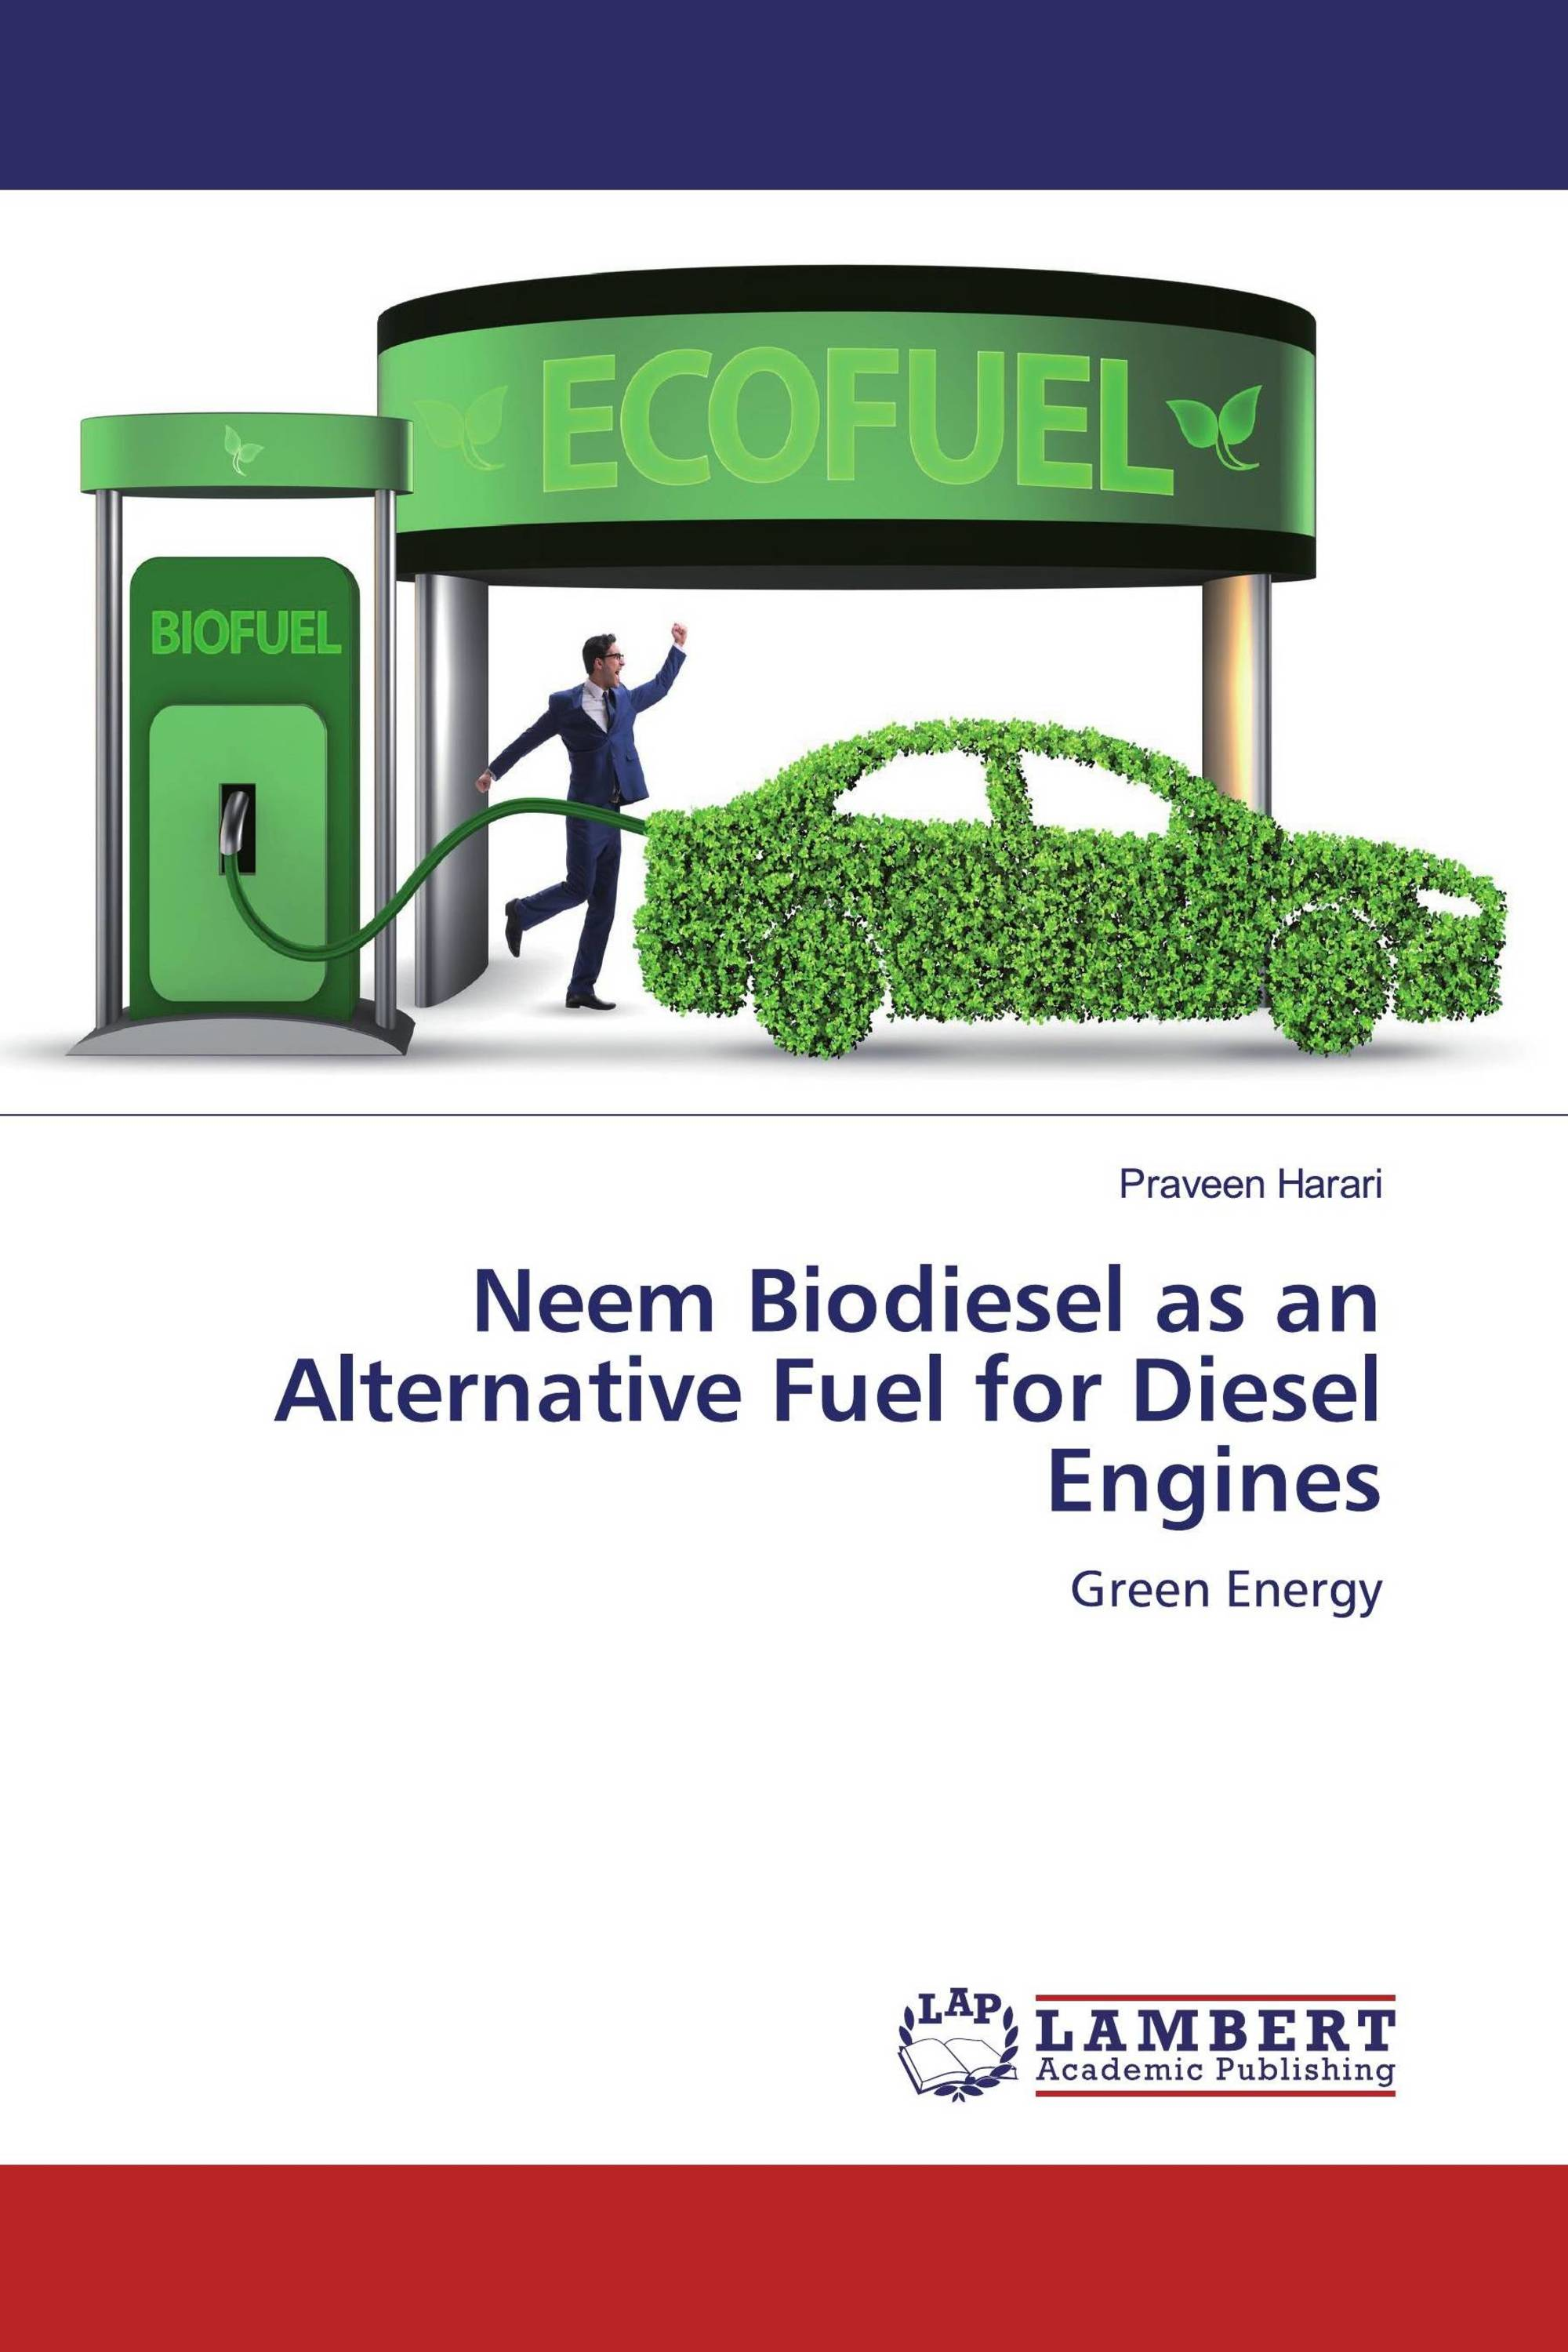 Neem Biodiesel as an Alternative Fuel for Diesel Engines